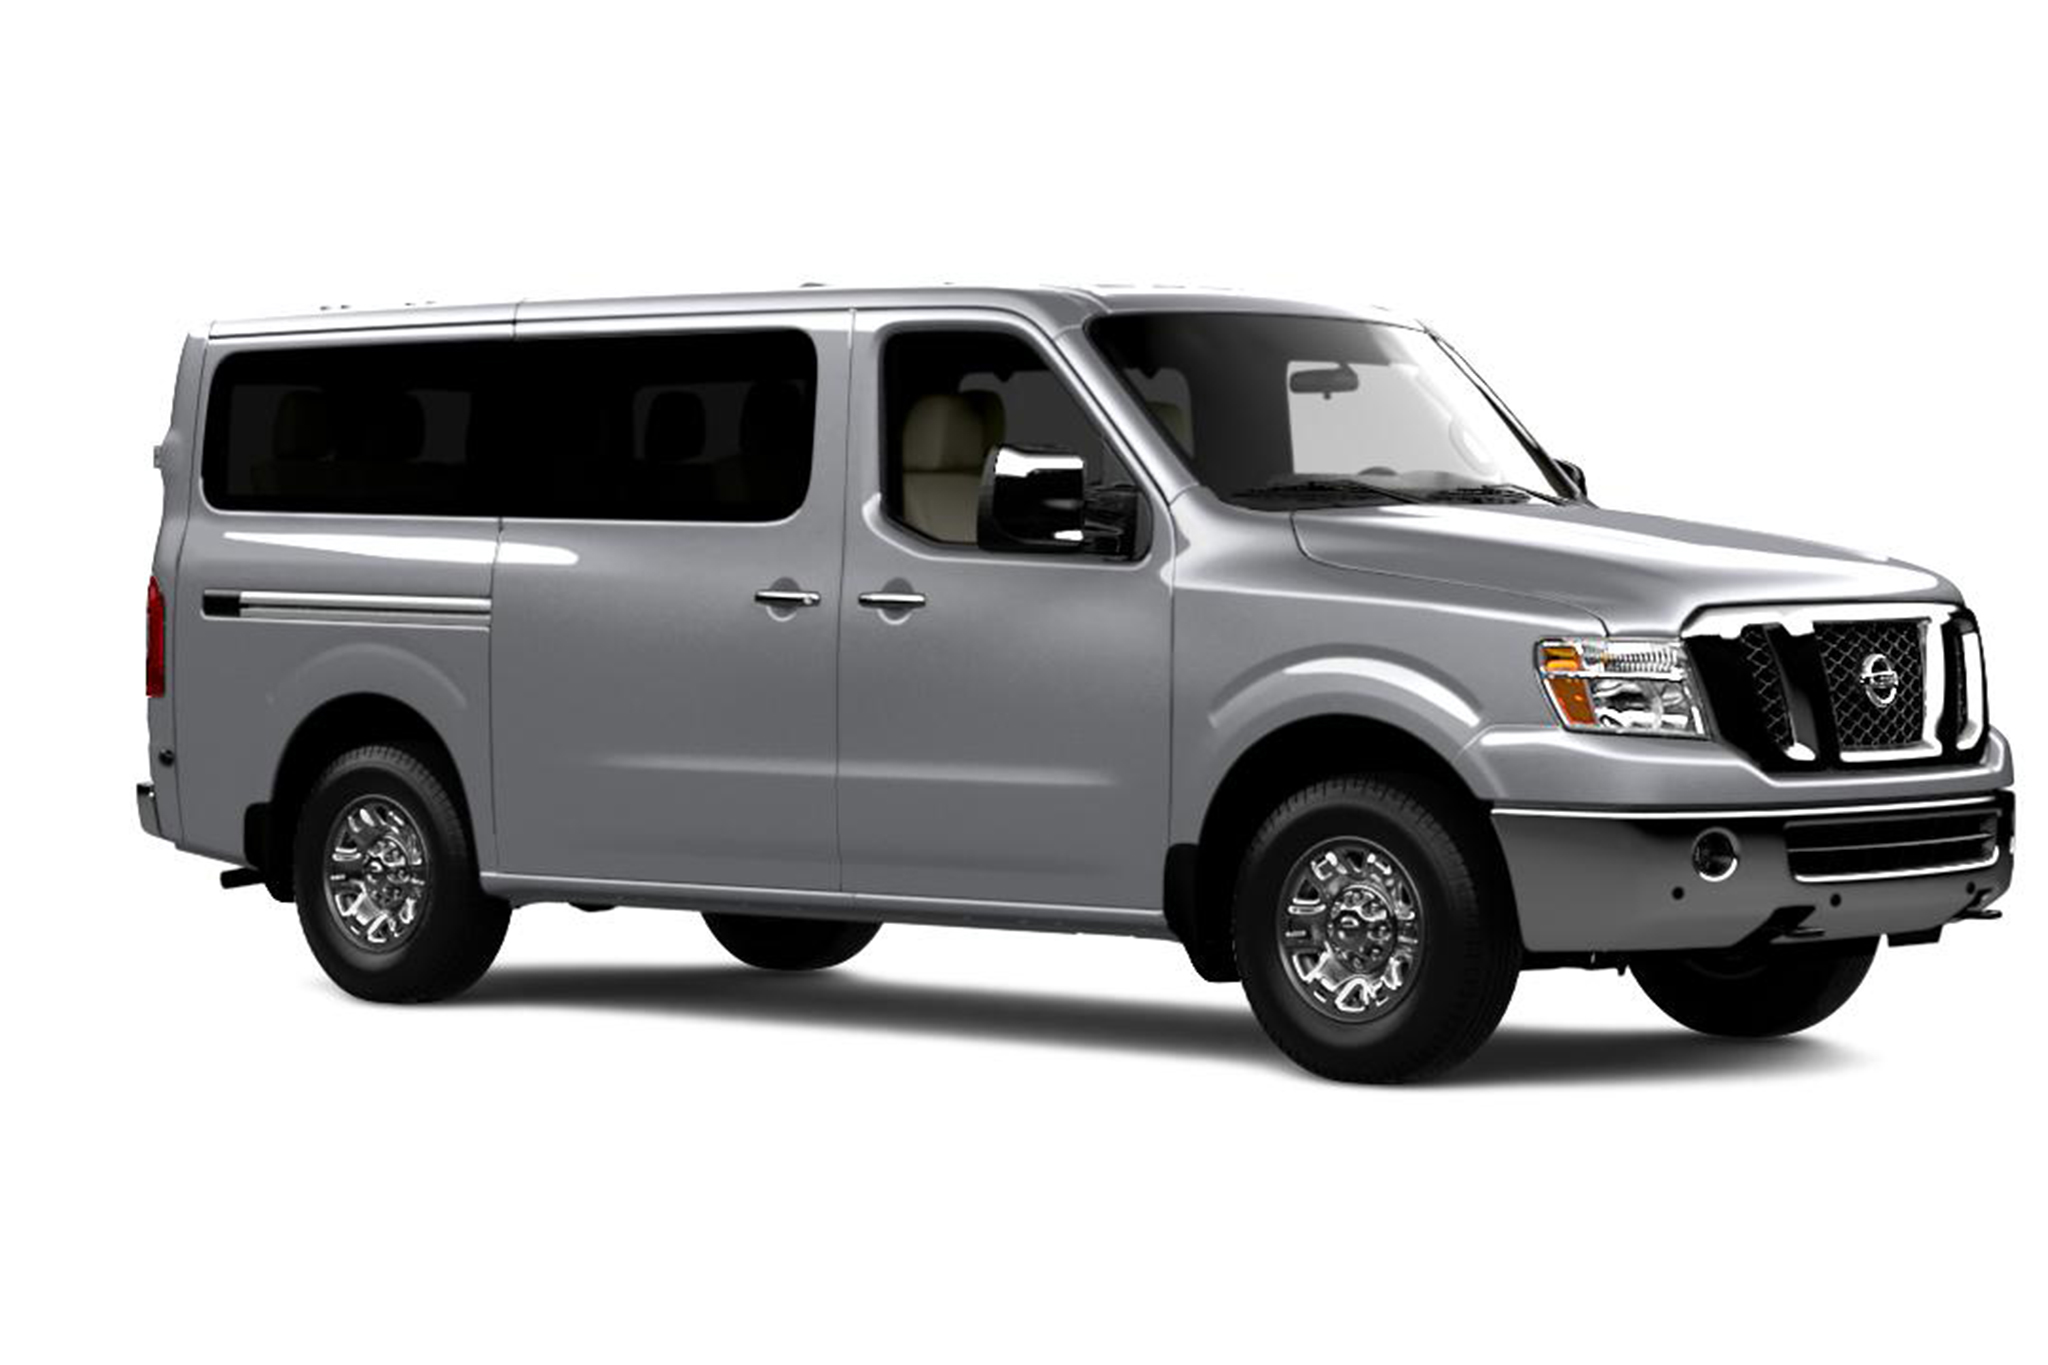 2014 Nissan NV Cargo Information and photos ZombieDrive